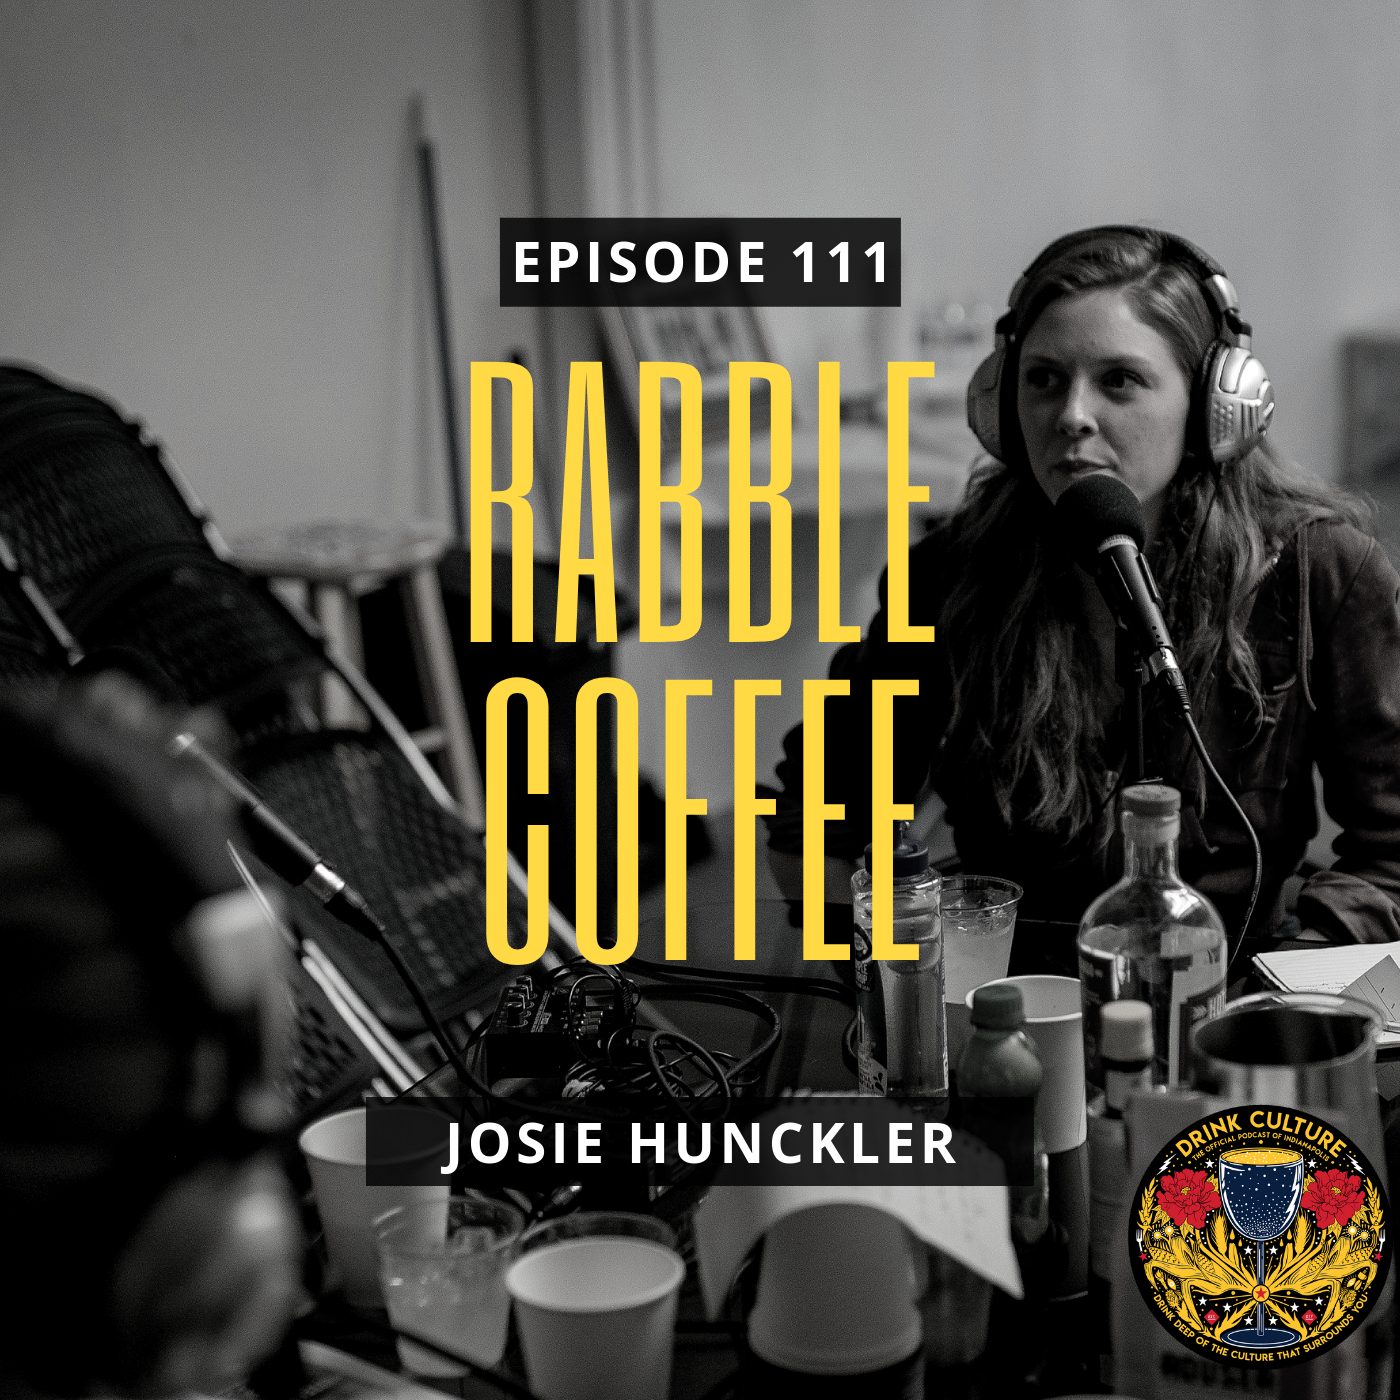 Episode 111: Rabble Coffee, Josie Hunckler -